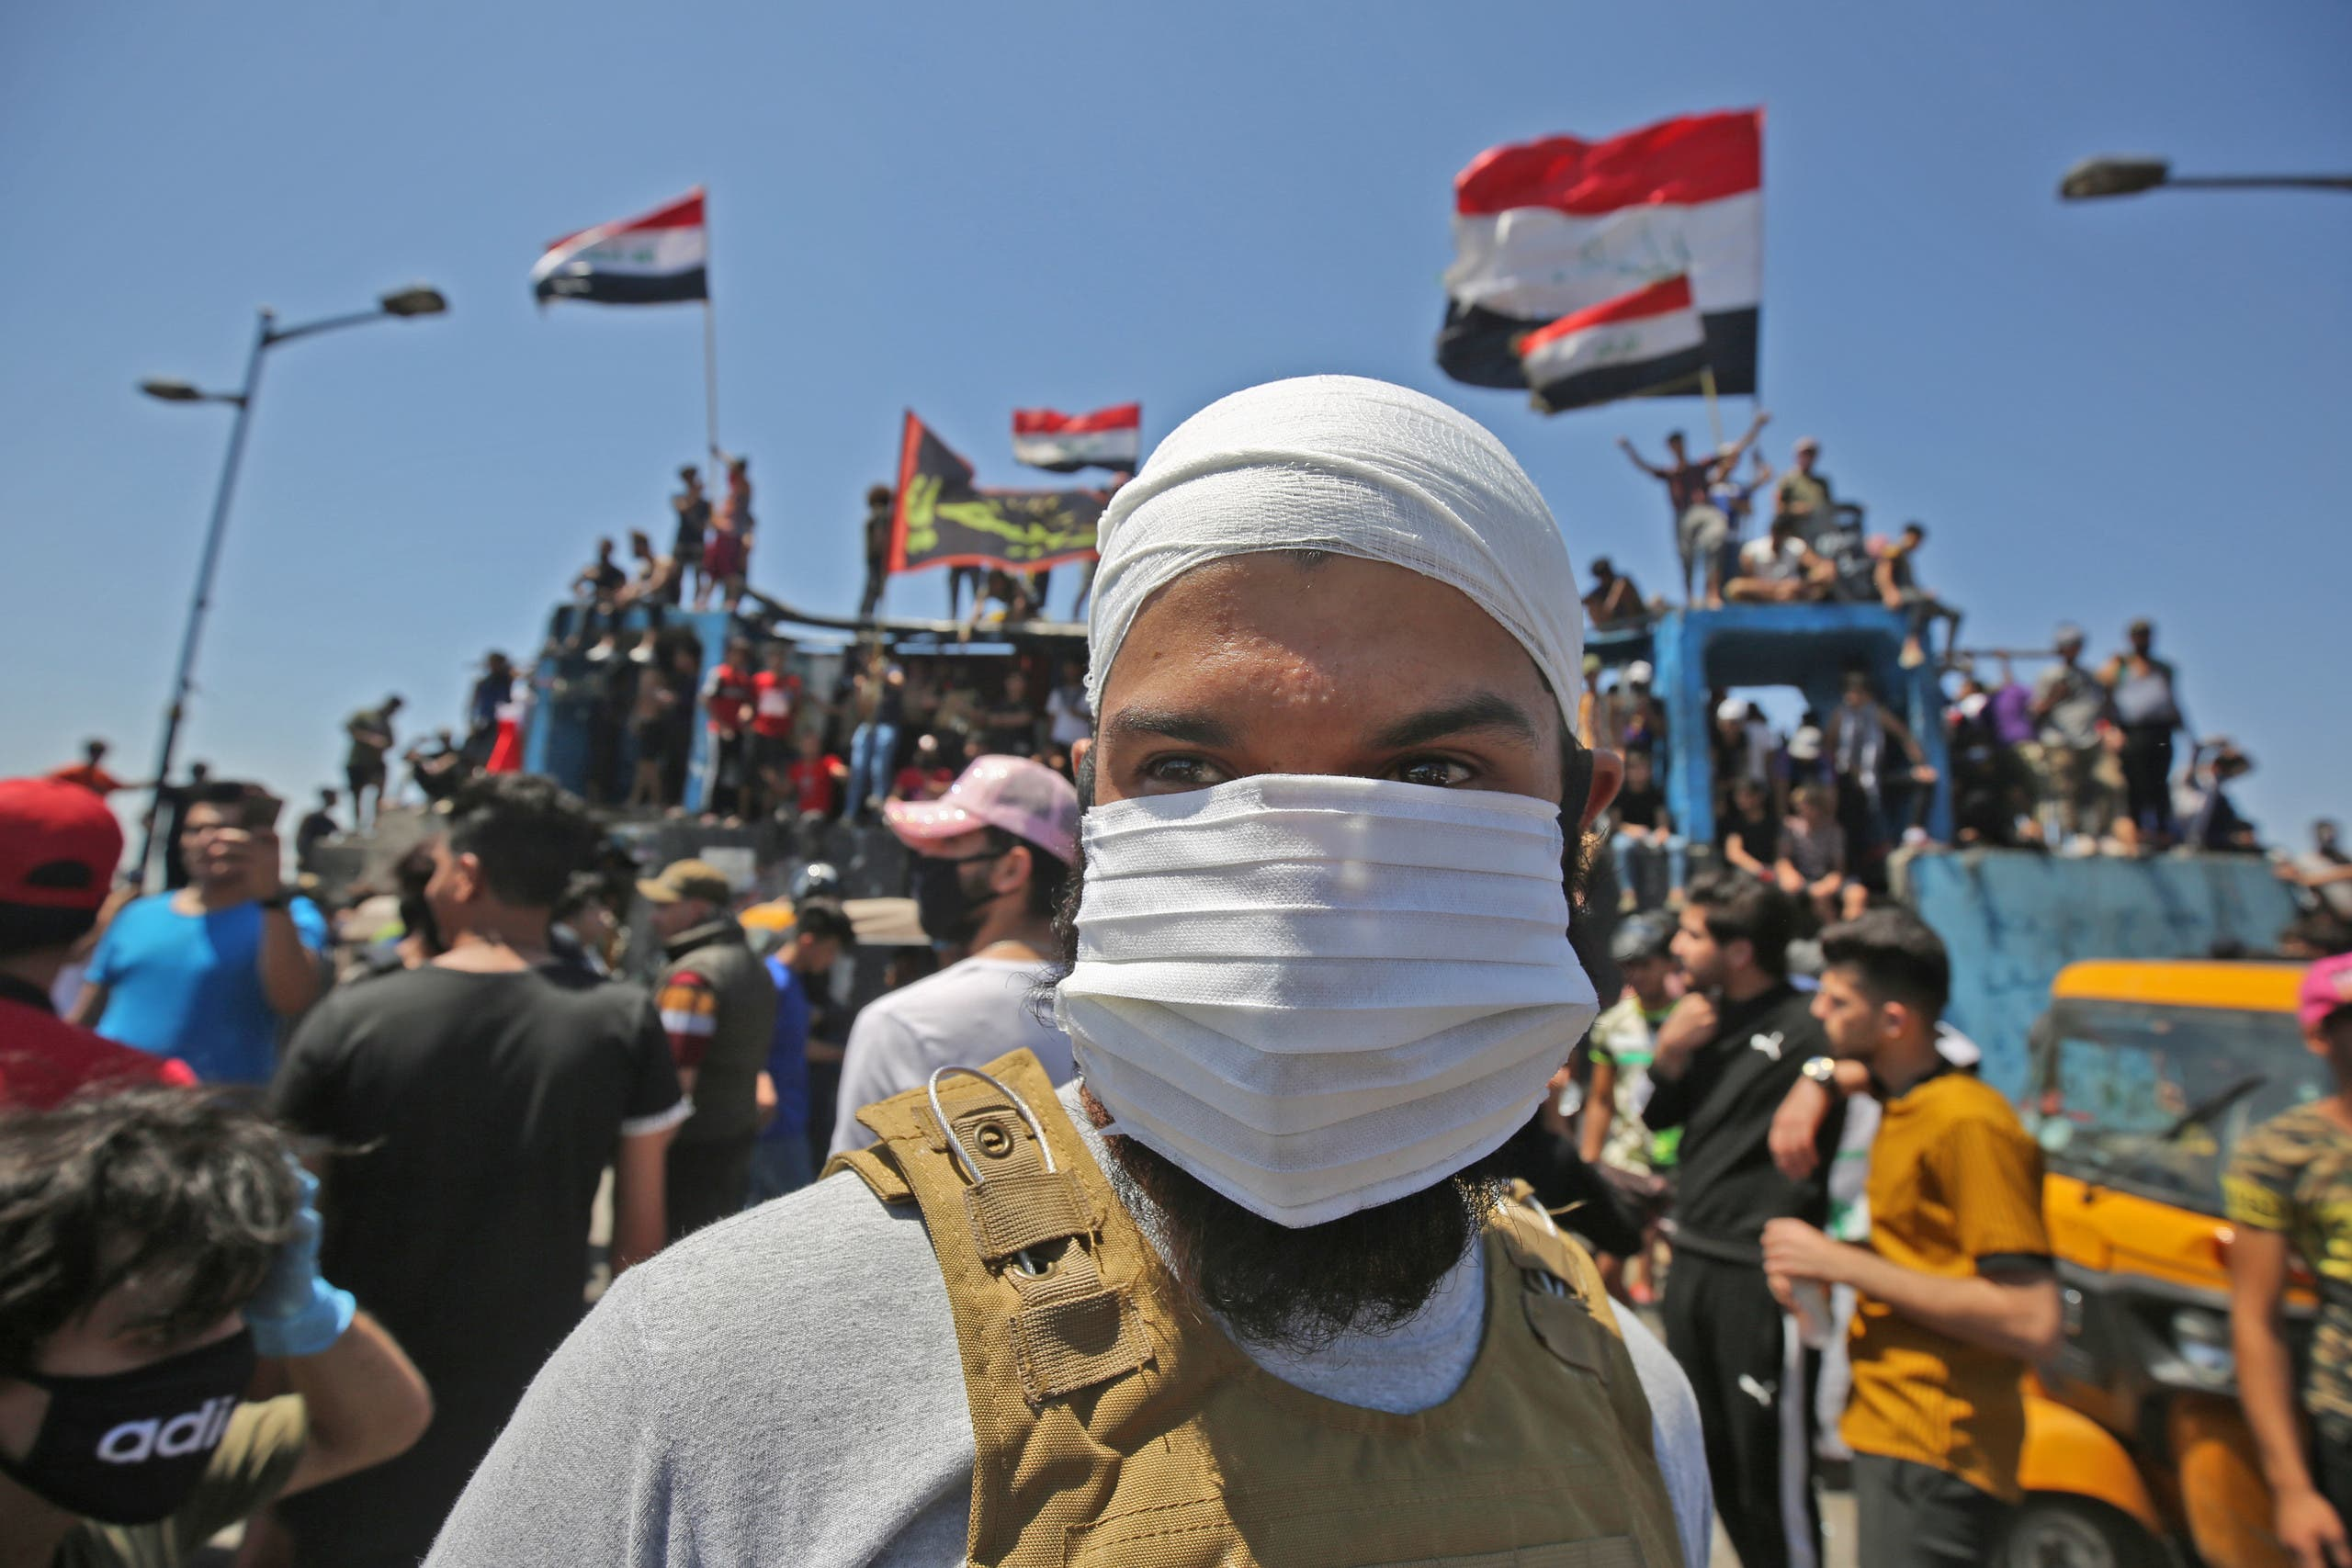 An Iraqi protester wears a face mask during an anti-government demonstration on Al-Jumhuriyah bridge in the capital Baghdad, on May 10, 2020. (File photo: AP)